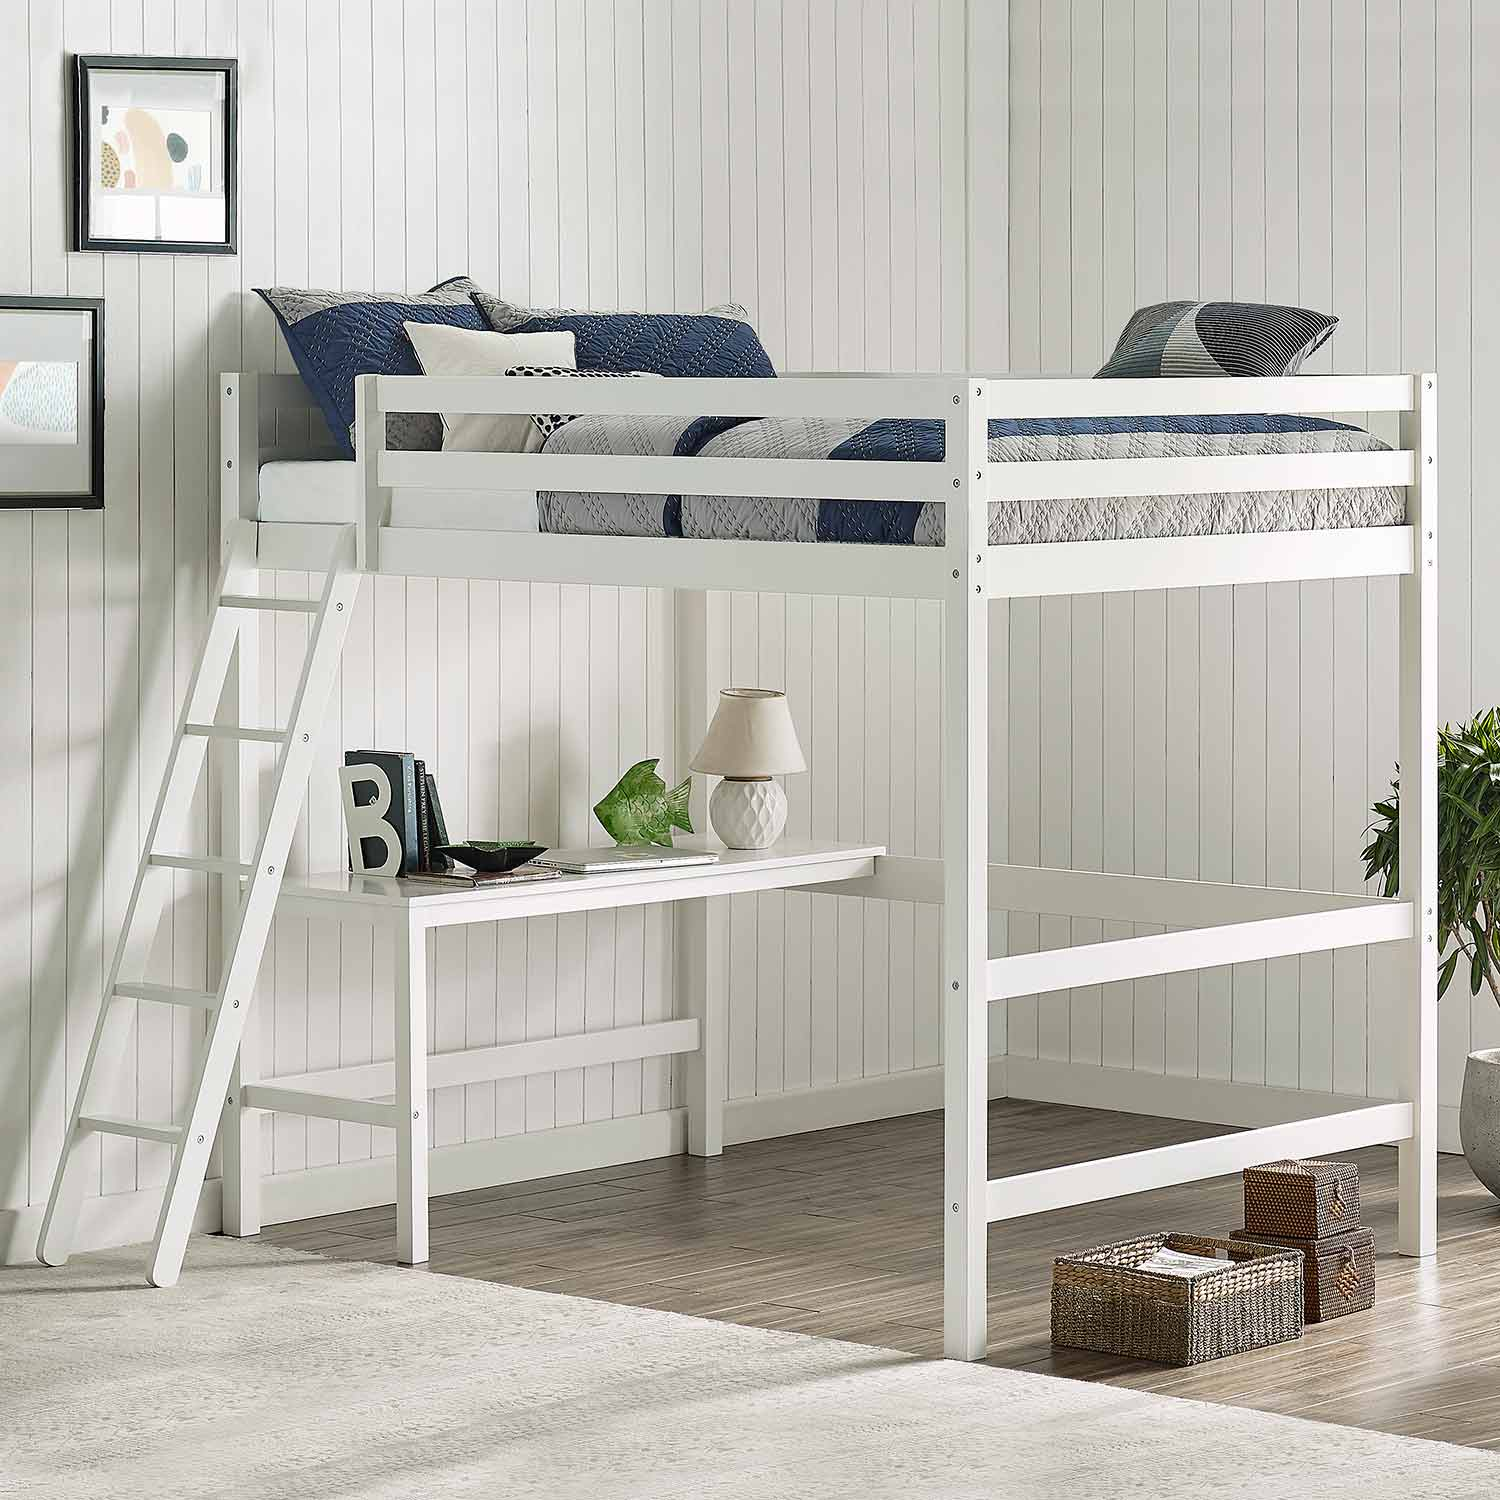 Hillsdale Caspian Full Loft Bed - White